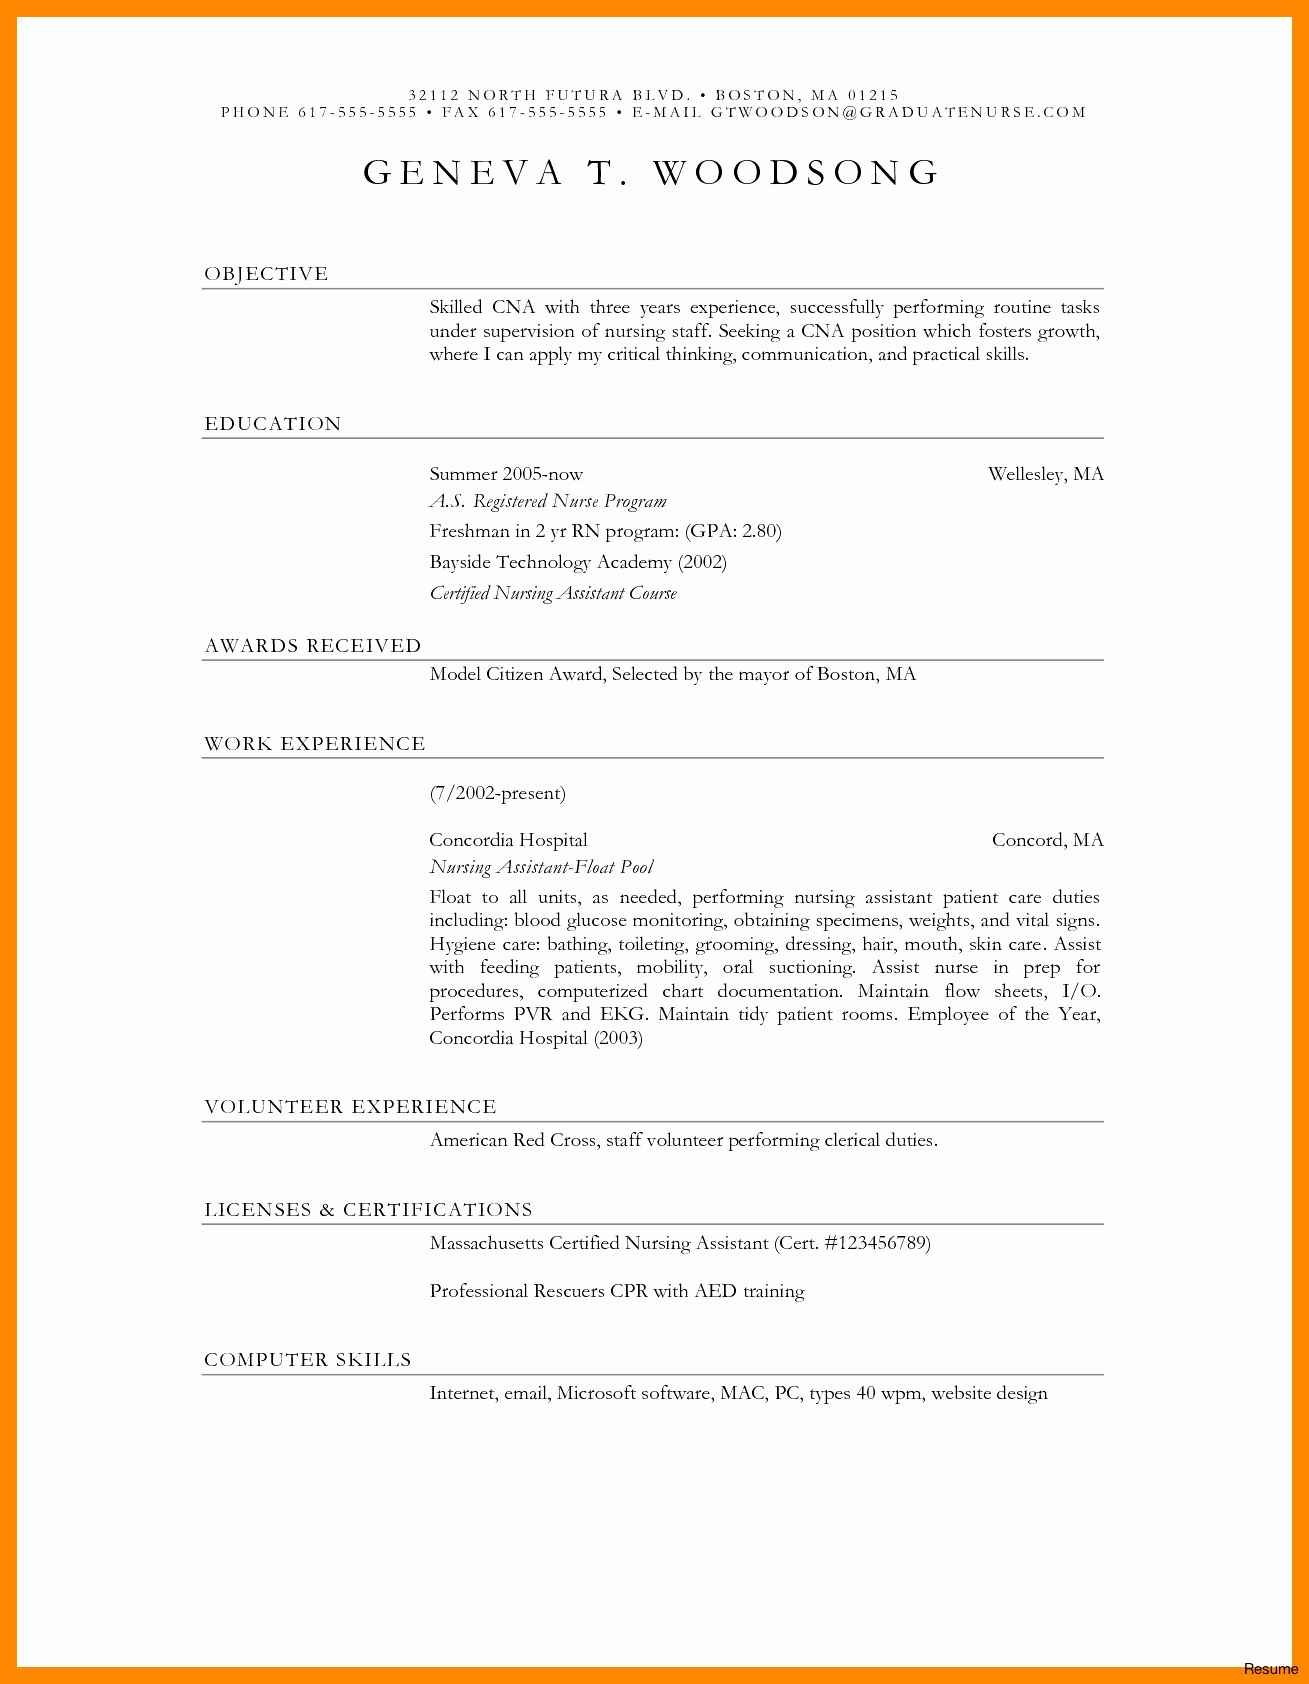 Resume Follow Up Letter Template - Free Resume Templates for Mac Fresh Outdoor Resume Template Elegant